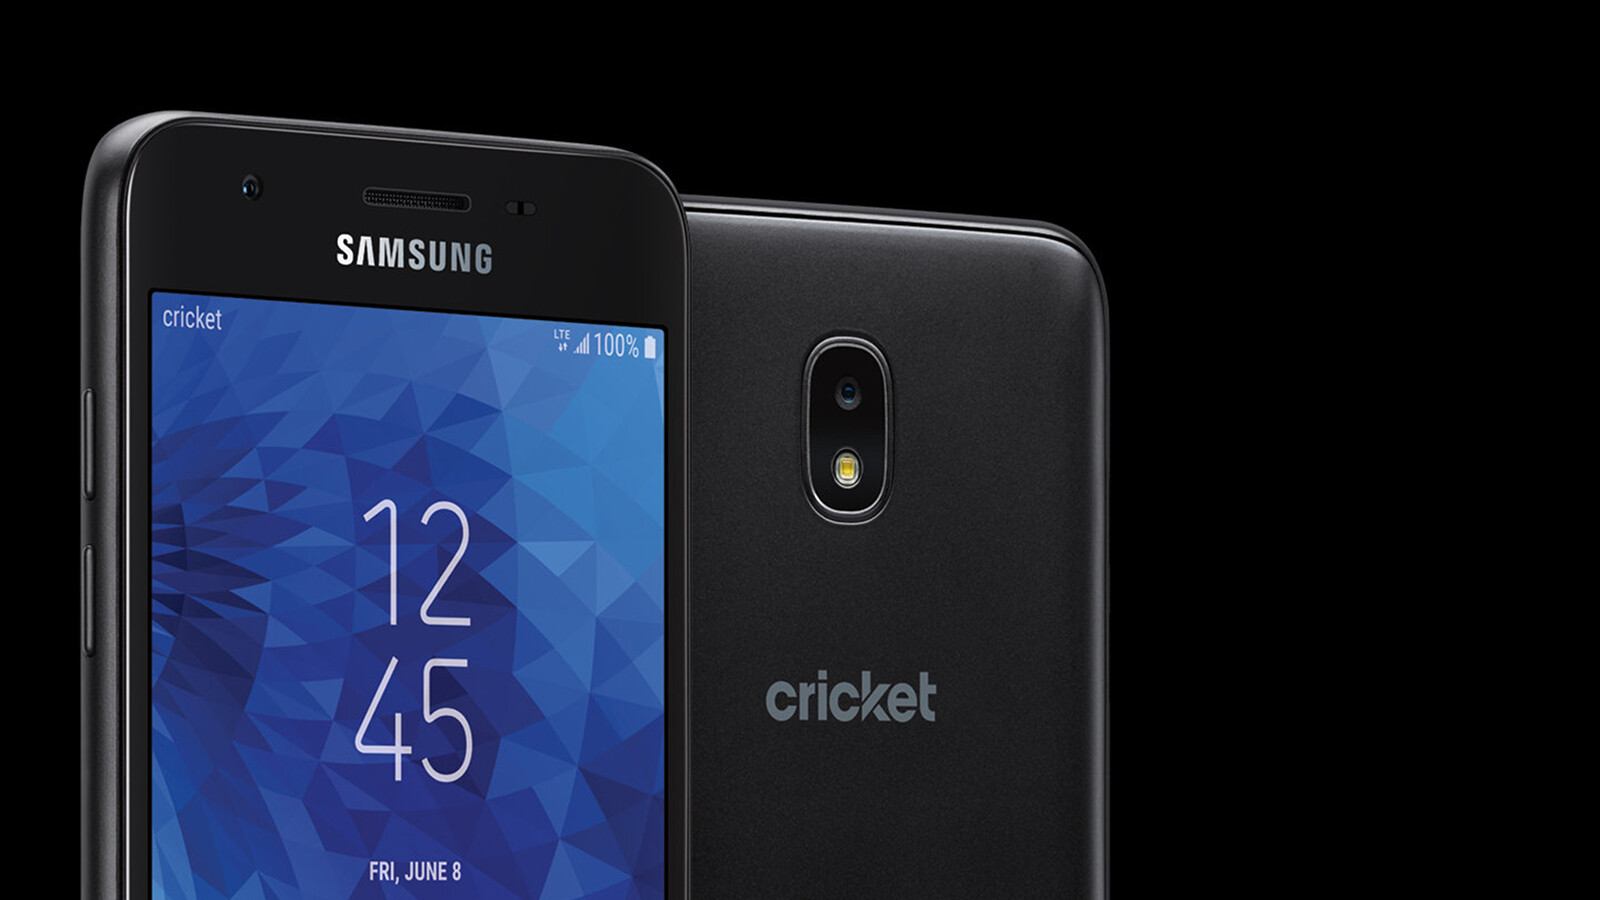 Samsung Galaxy Amp Prime 3 goes on sale at Cricket for $130